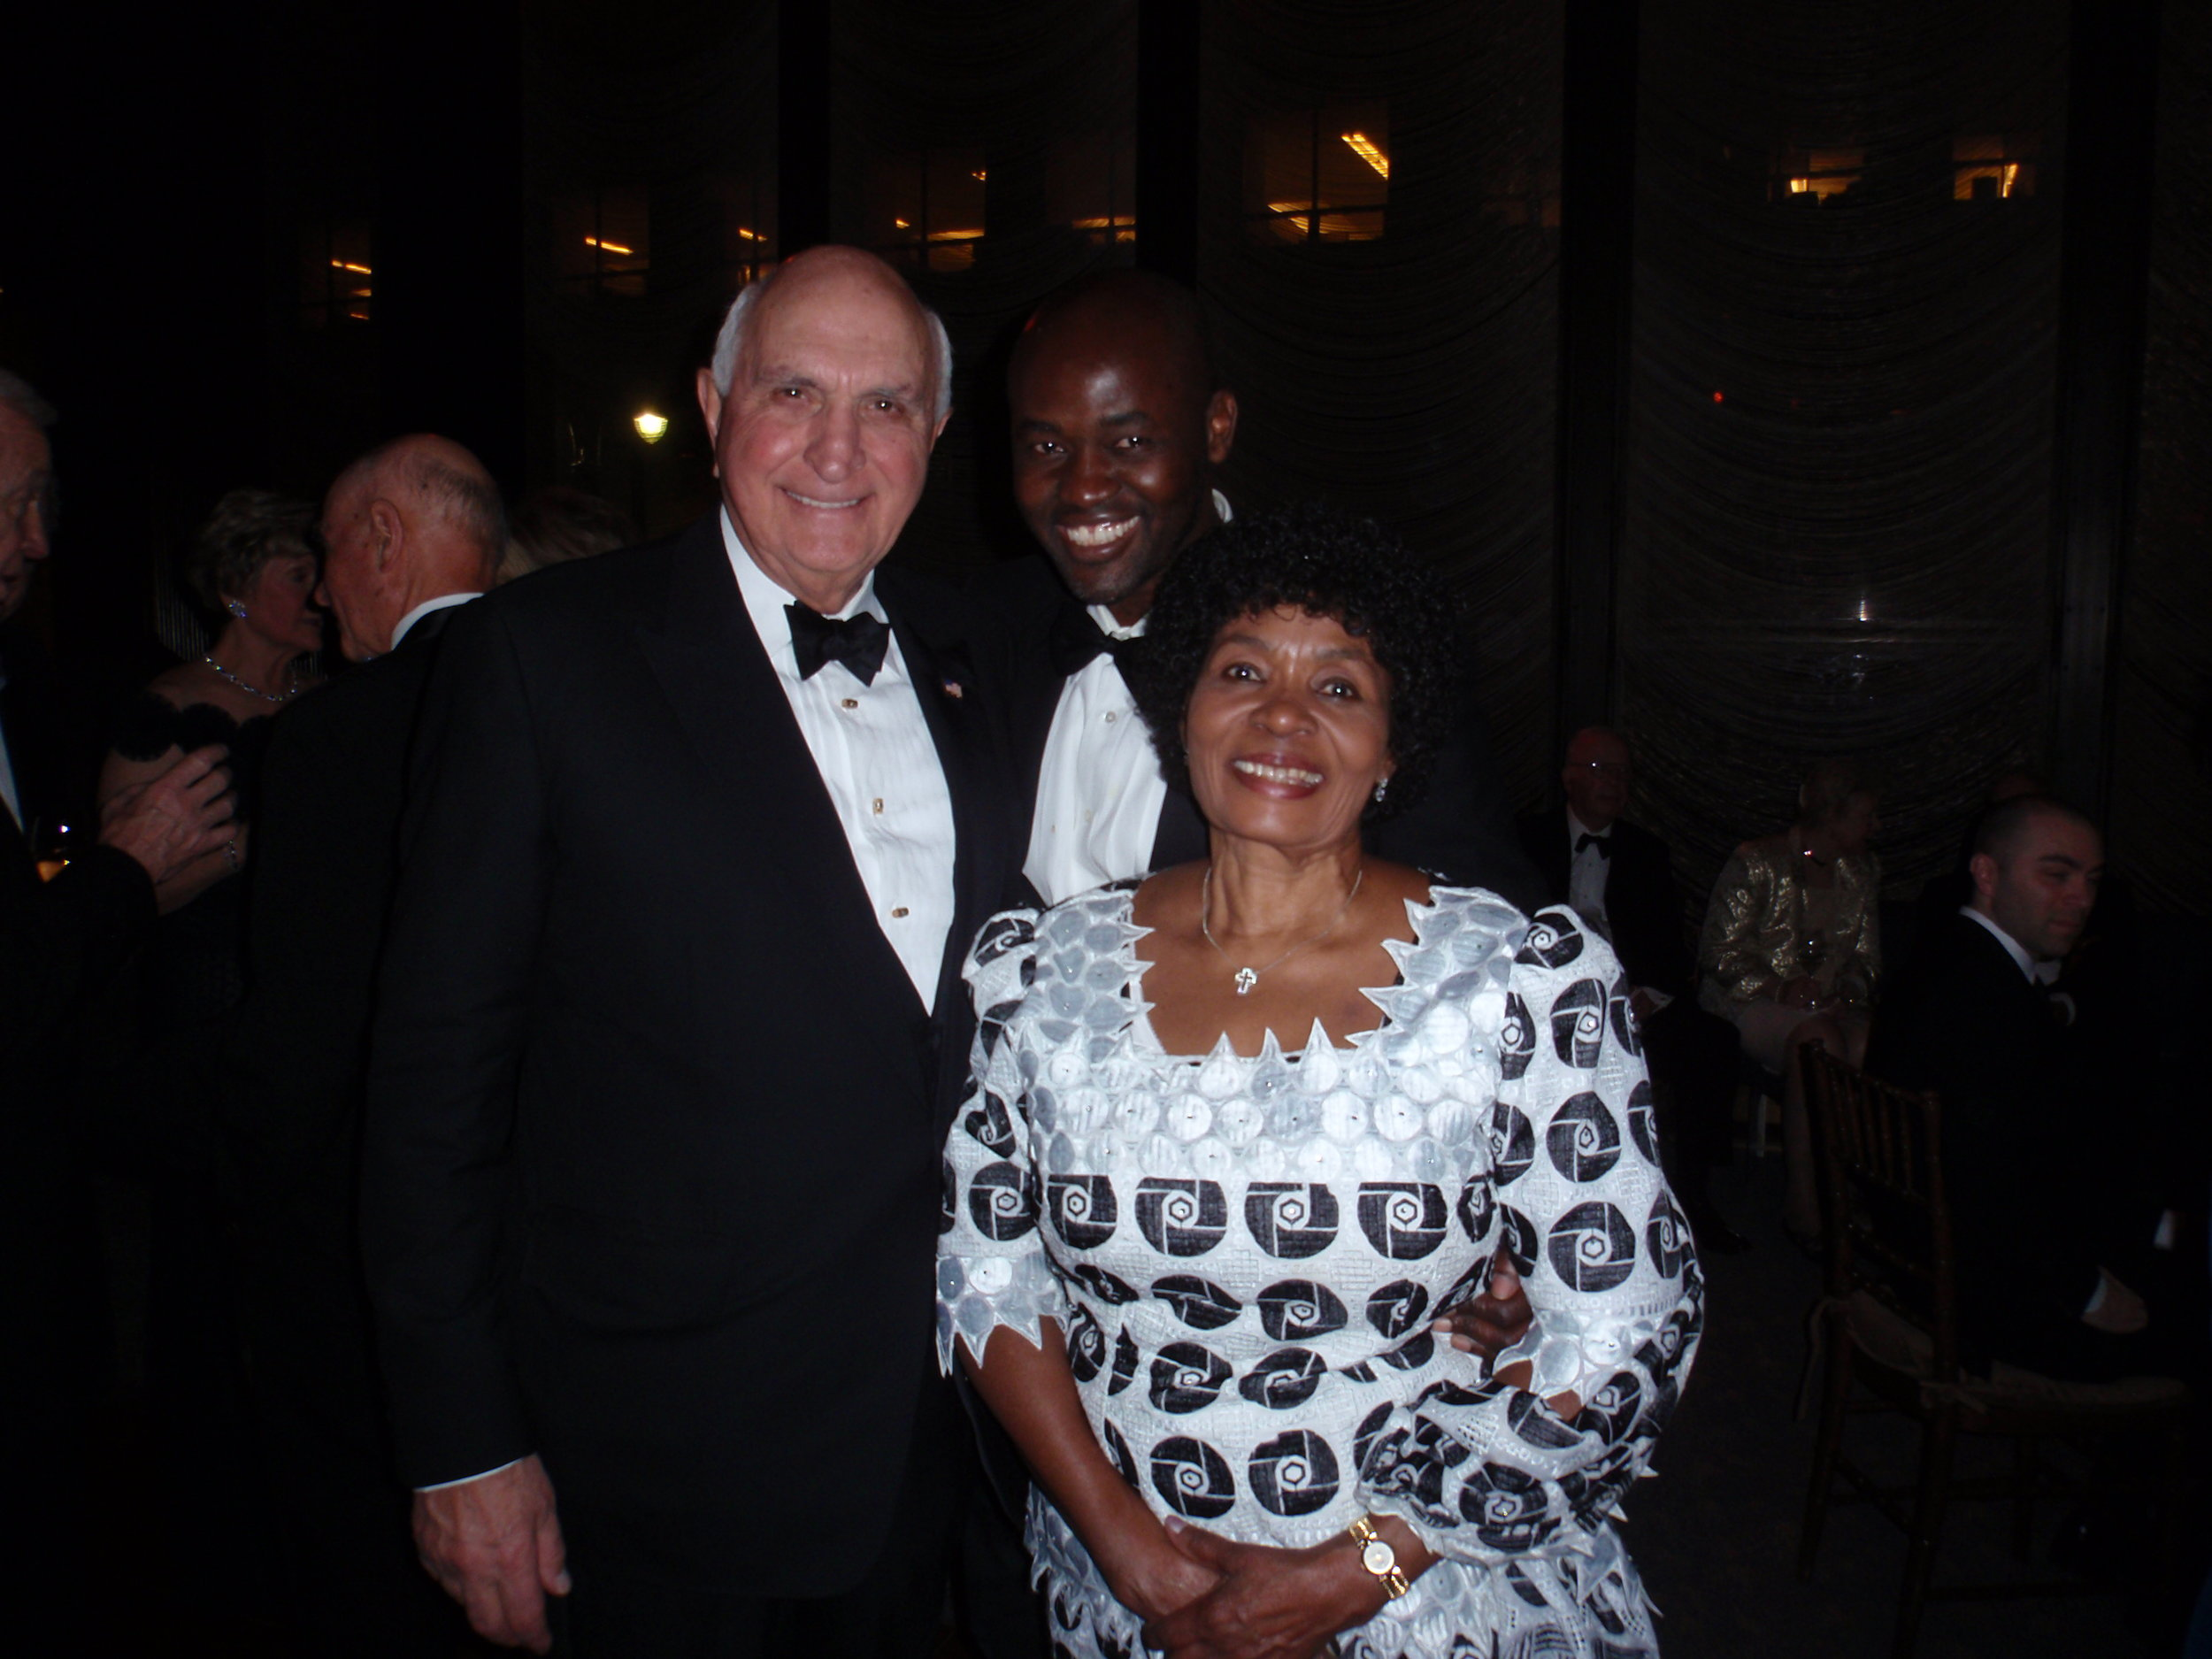 At the wedding reception, I introduced my mom to  Ken Langone, the down-to-earth billionaire who co-founded Home Depot .